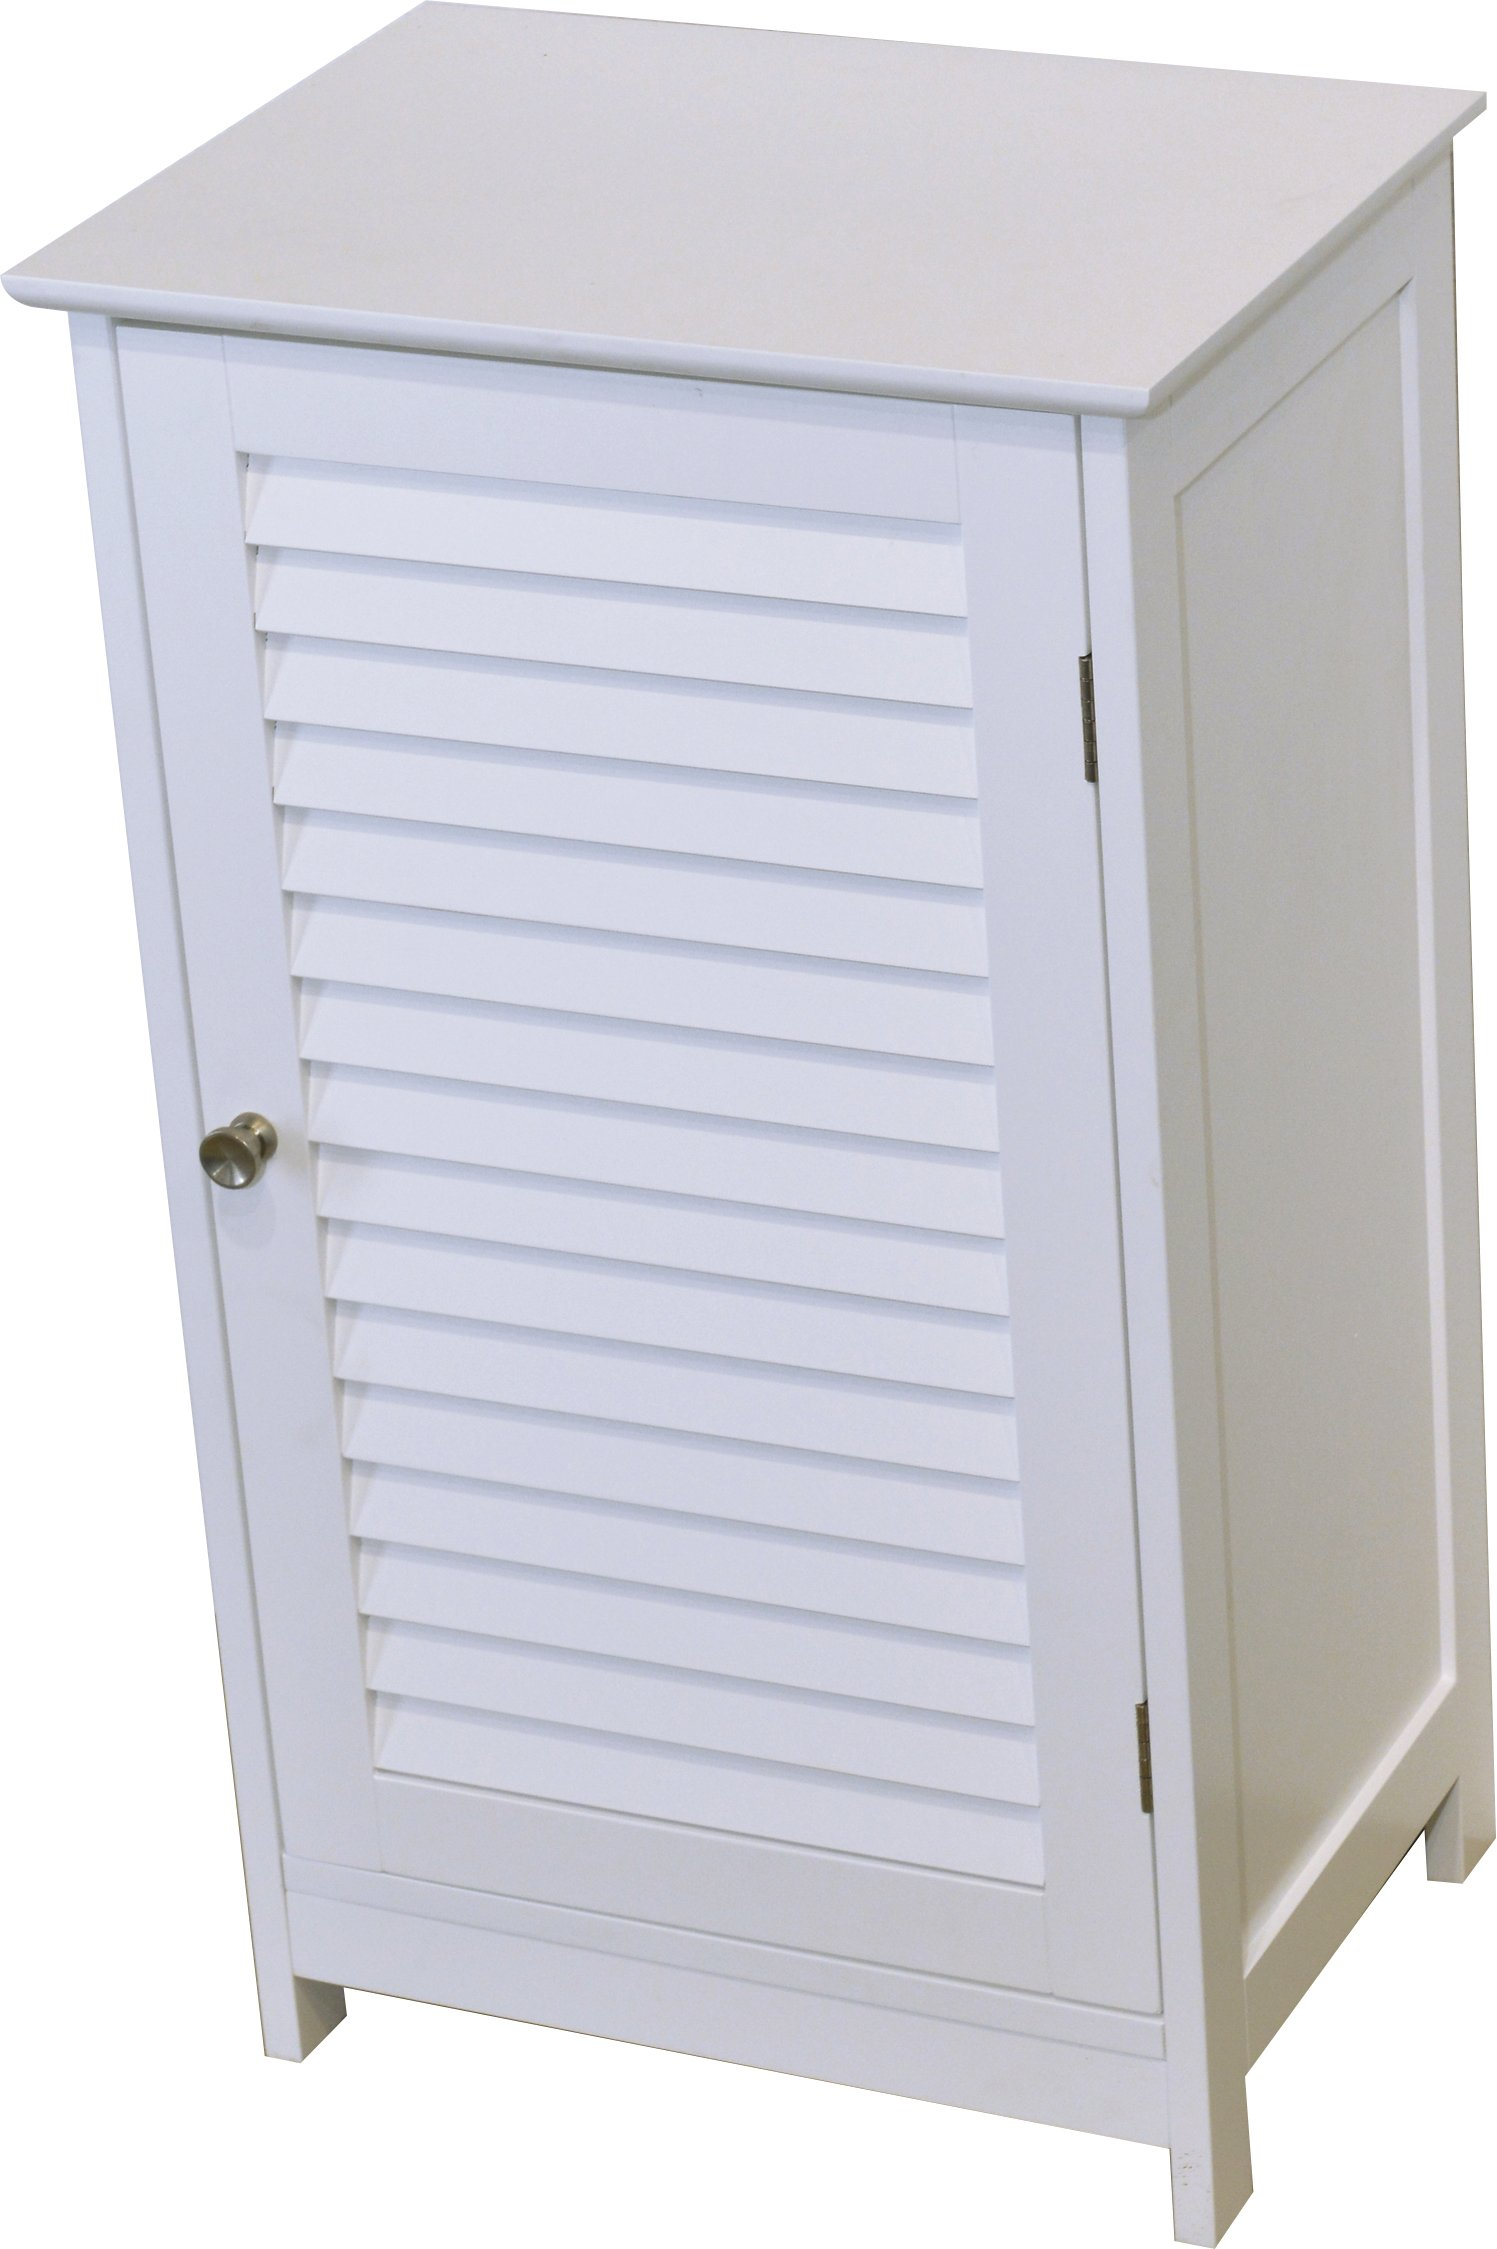 EVIDECO 9902307 Storage Floor Cabinet Florence 15.7'' x 27'' Free Standing Cabinet